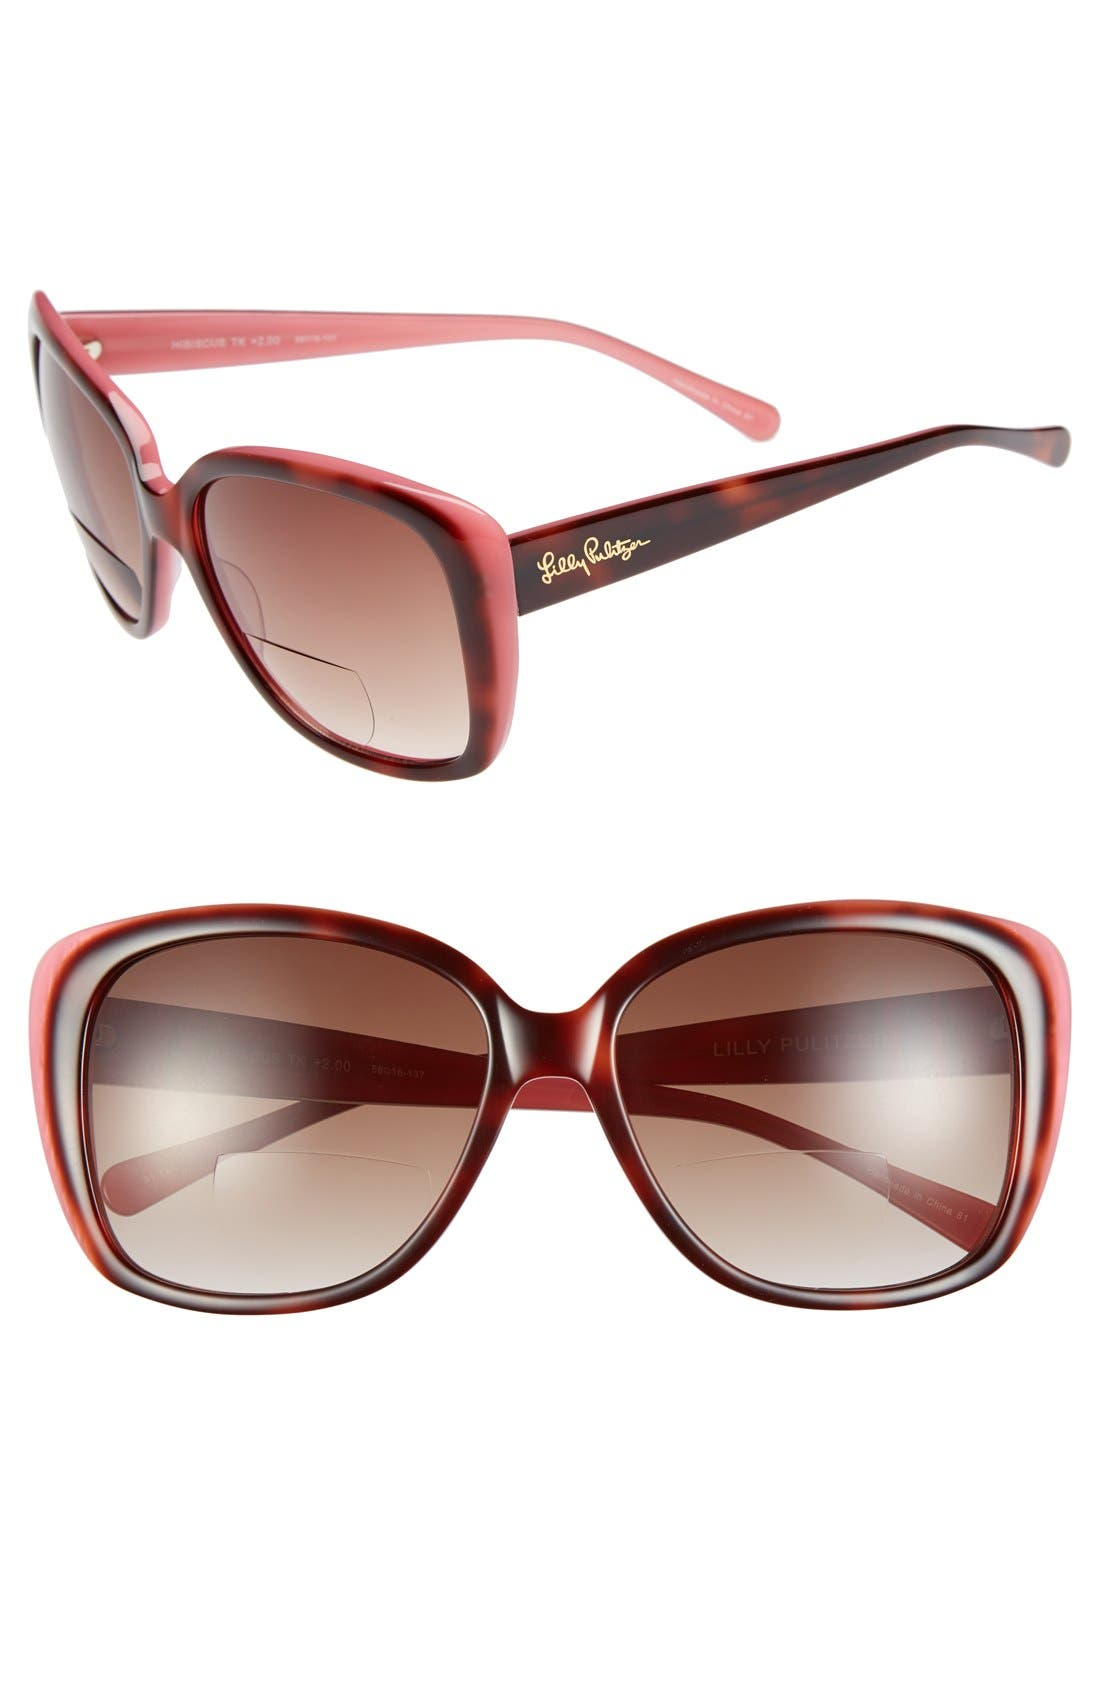 Main Image - Lilly Pulitzer 'Hibiscus' 58mm Reading Sunglasses